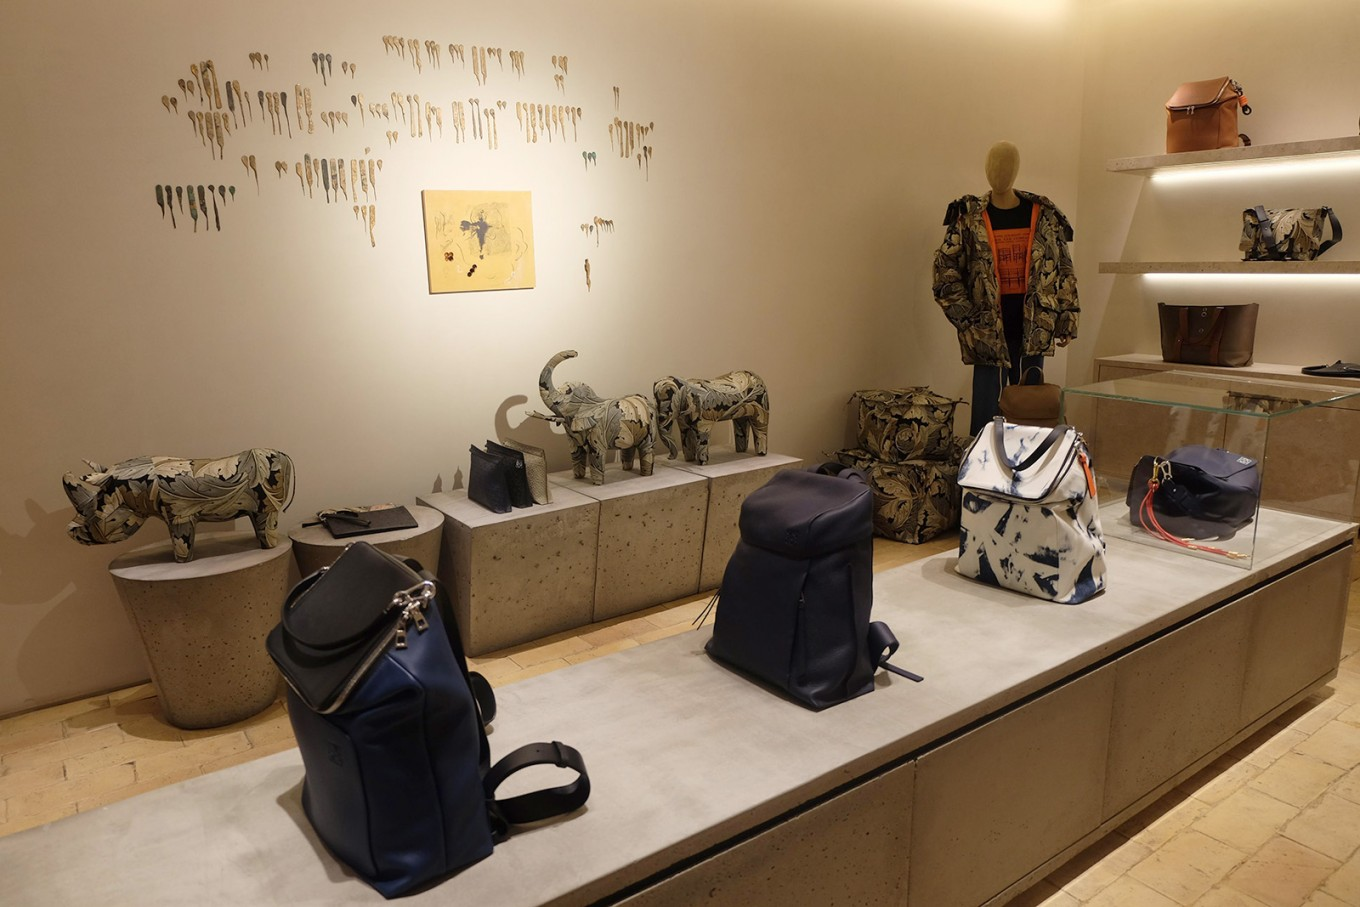 Products on displat at Loewe's flagship store in Madrid.